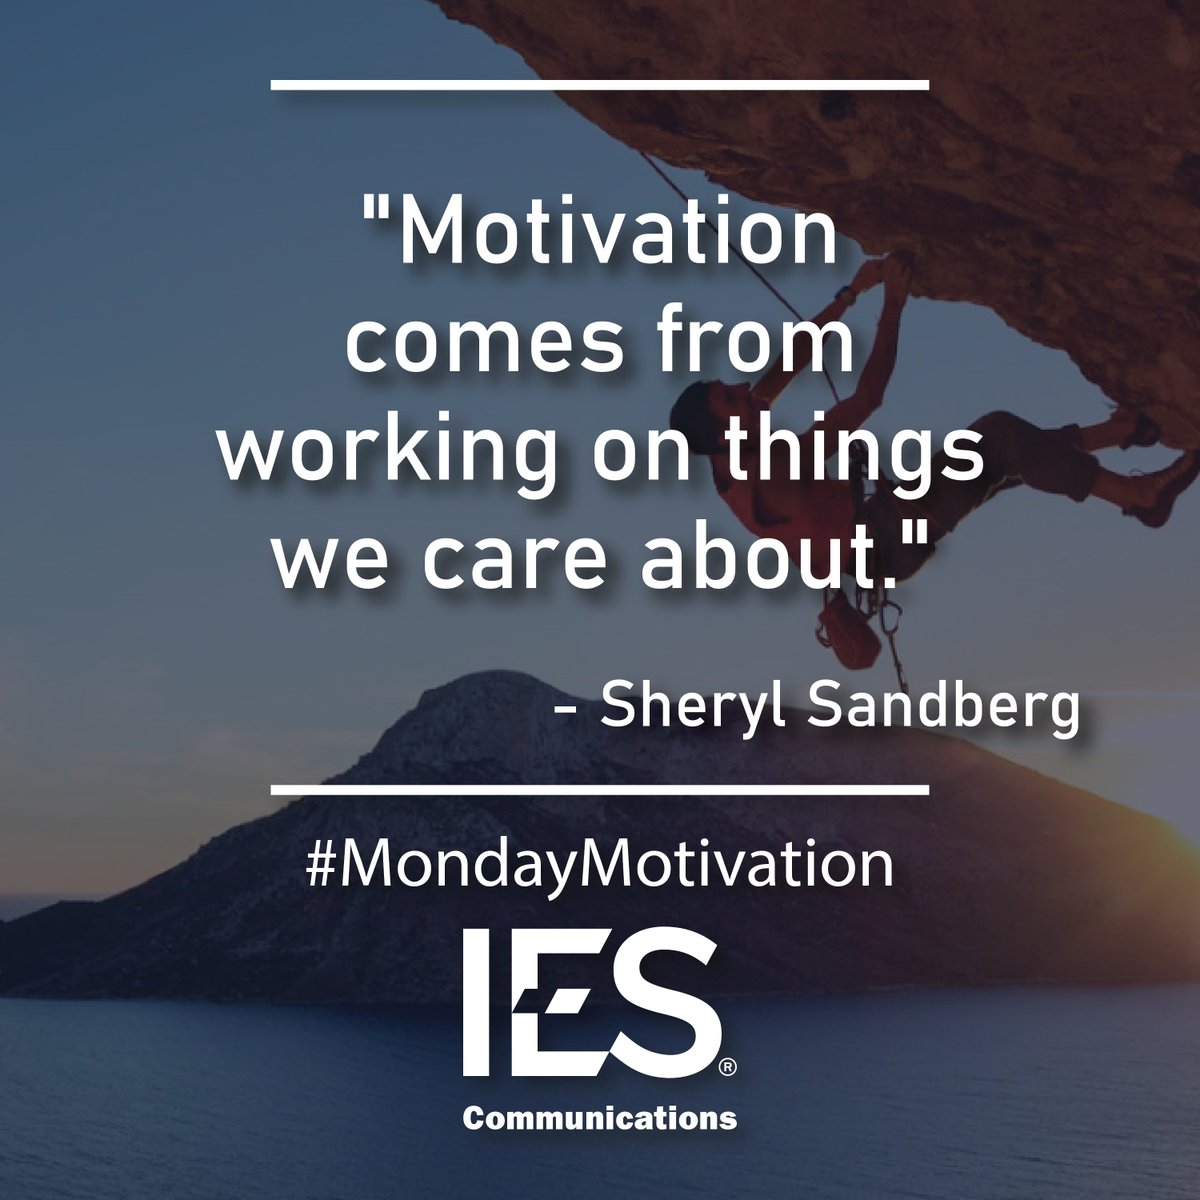 This week, find what matters most to you, and let that be the driving force behind your work. #MondayMotivation #OneIES